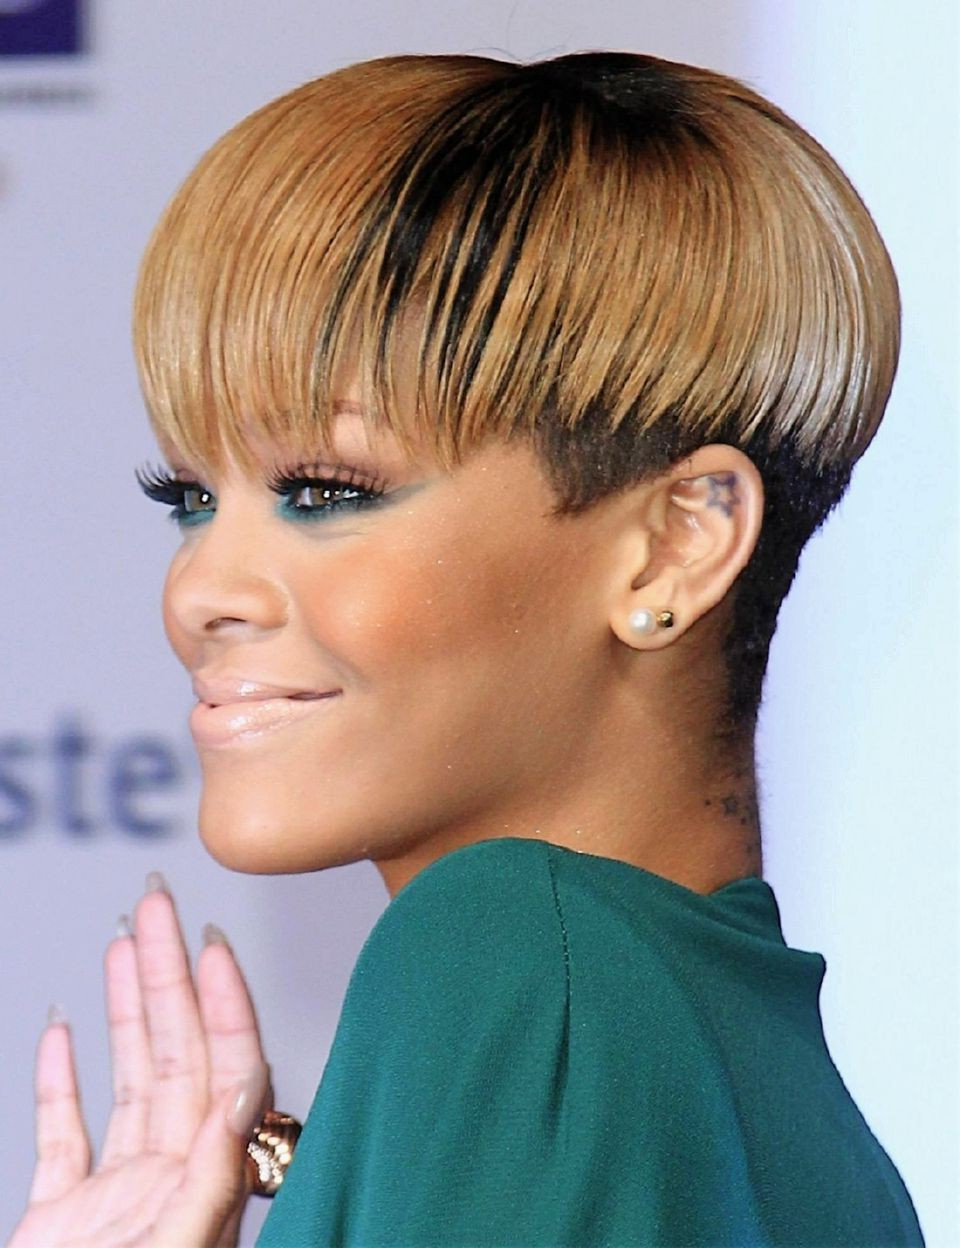 Black Celebrity Short Hairstyles Black Short Hairstyles With Shaved Regarding Shaved Side Short Hairstyles (View 23 of 25)